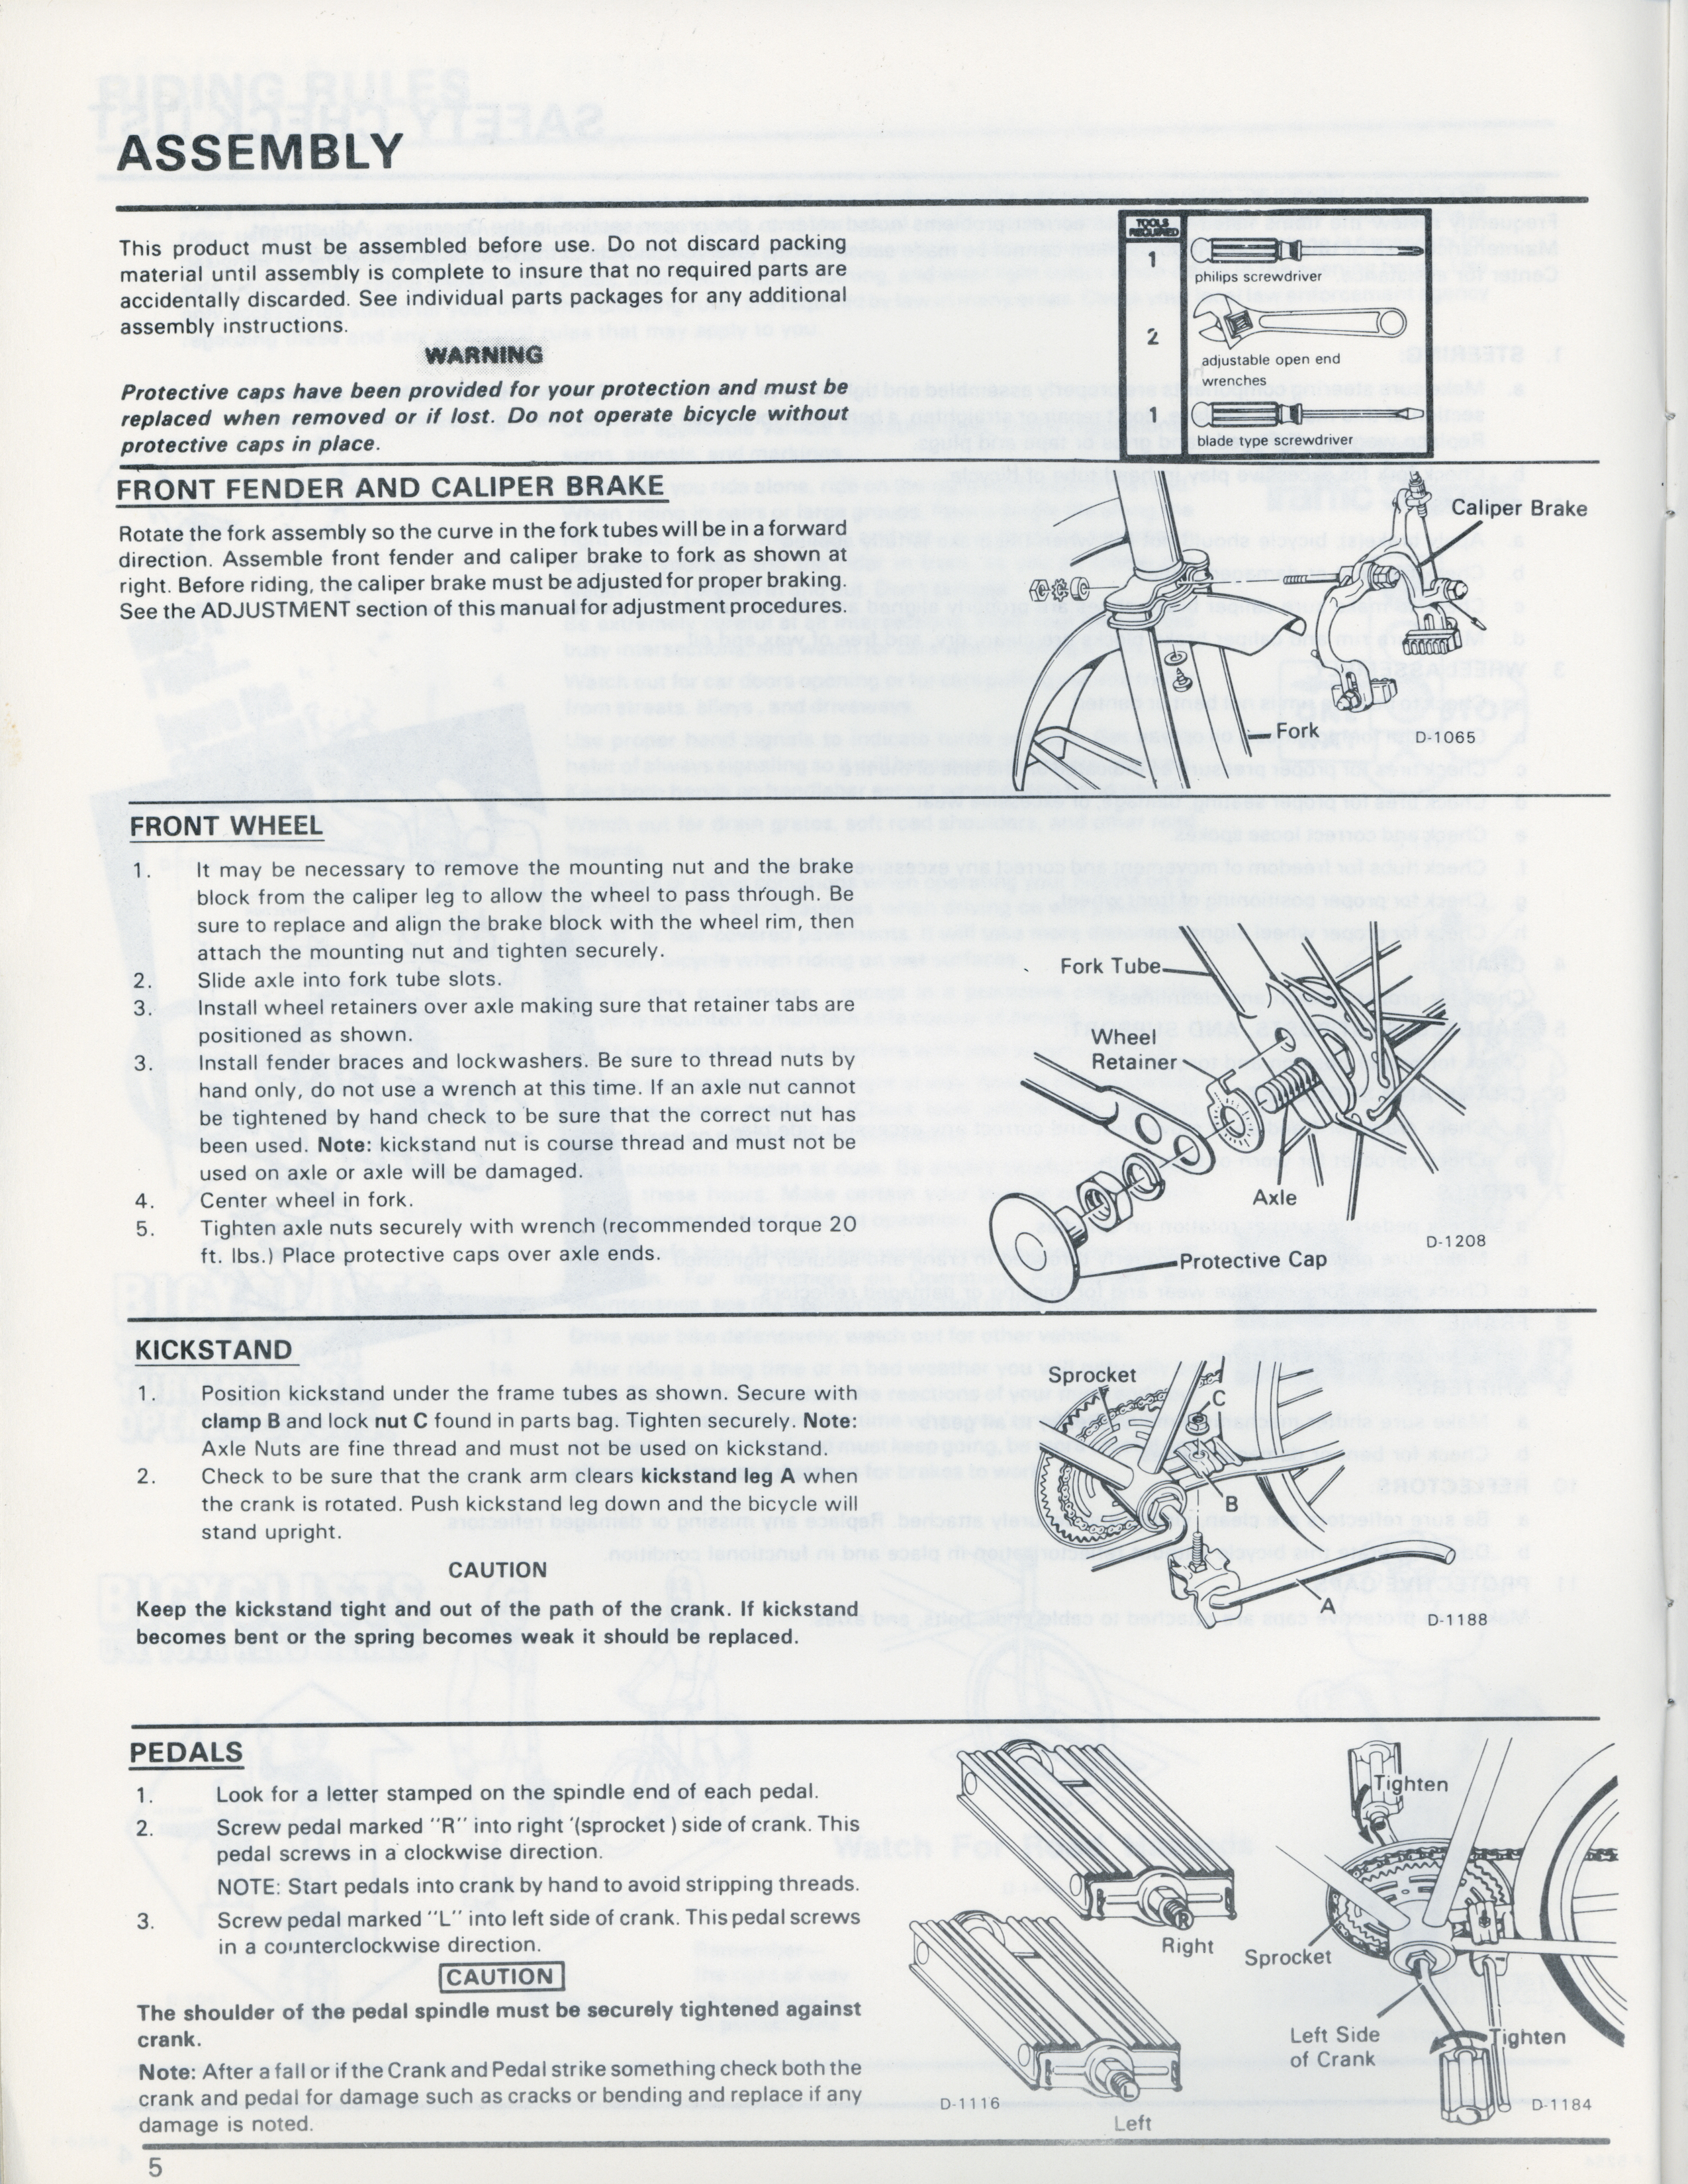 sears free spirit treadmill manual